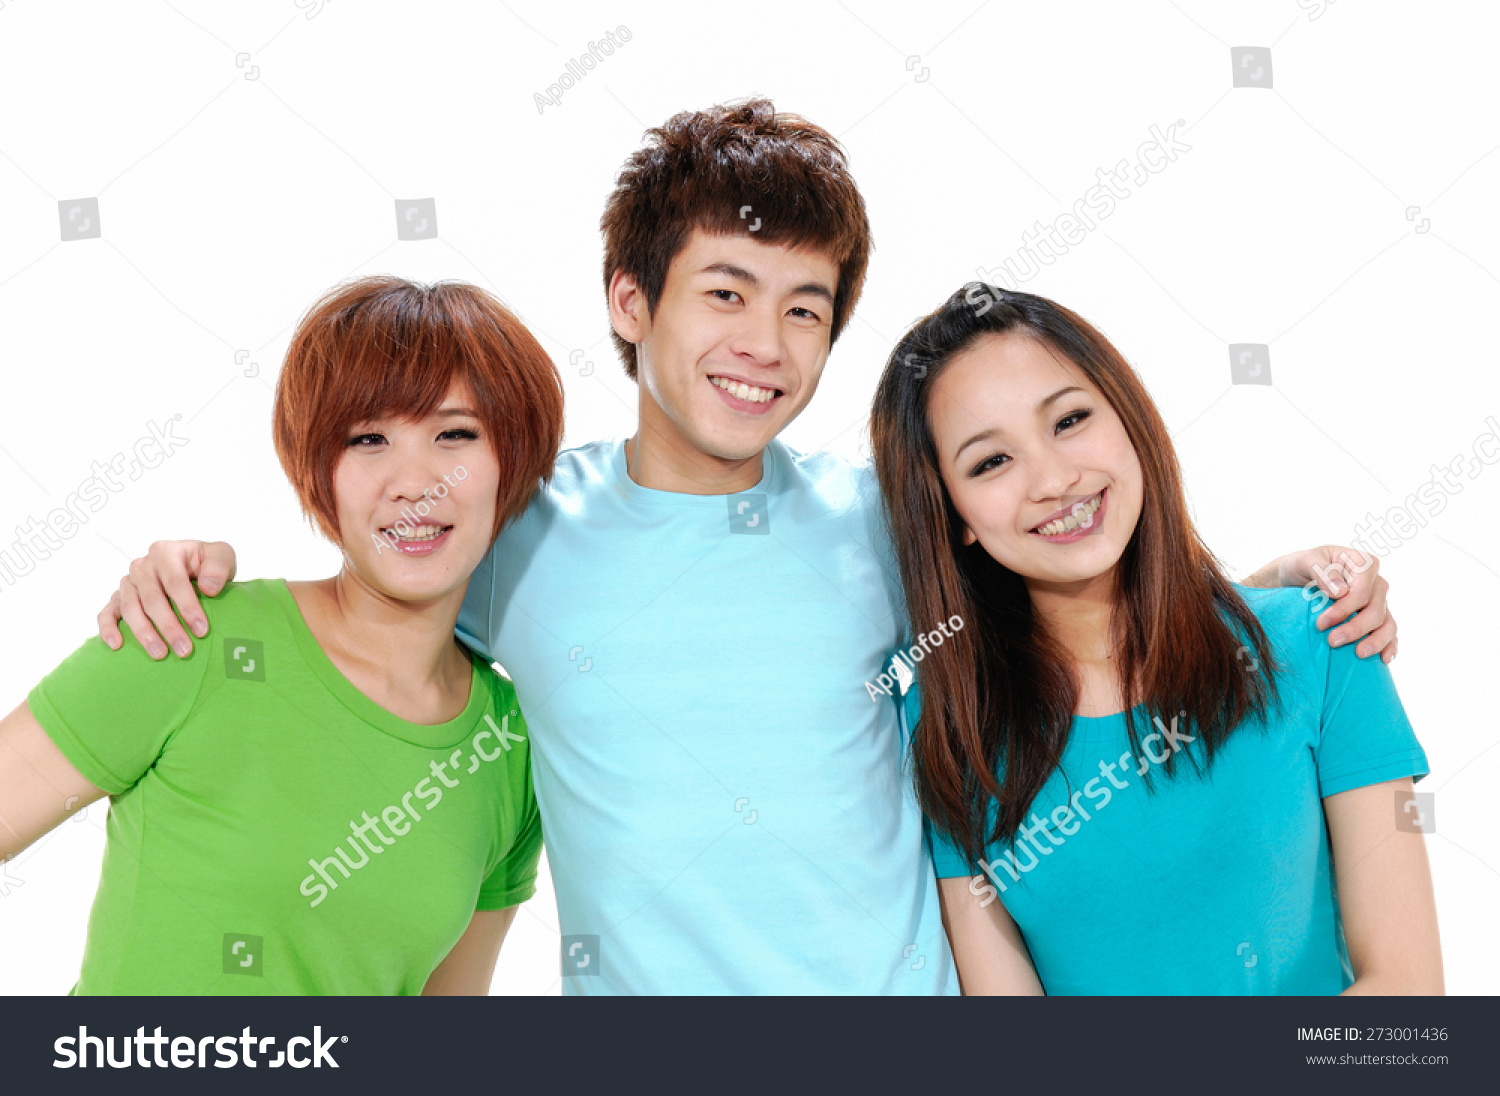 Three Young Happy Friends Two Girls Stock Photo 273001436